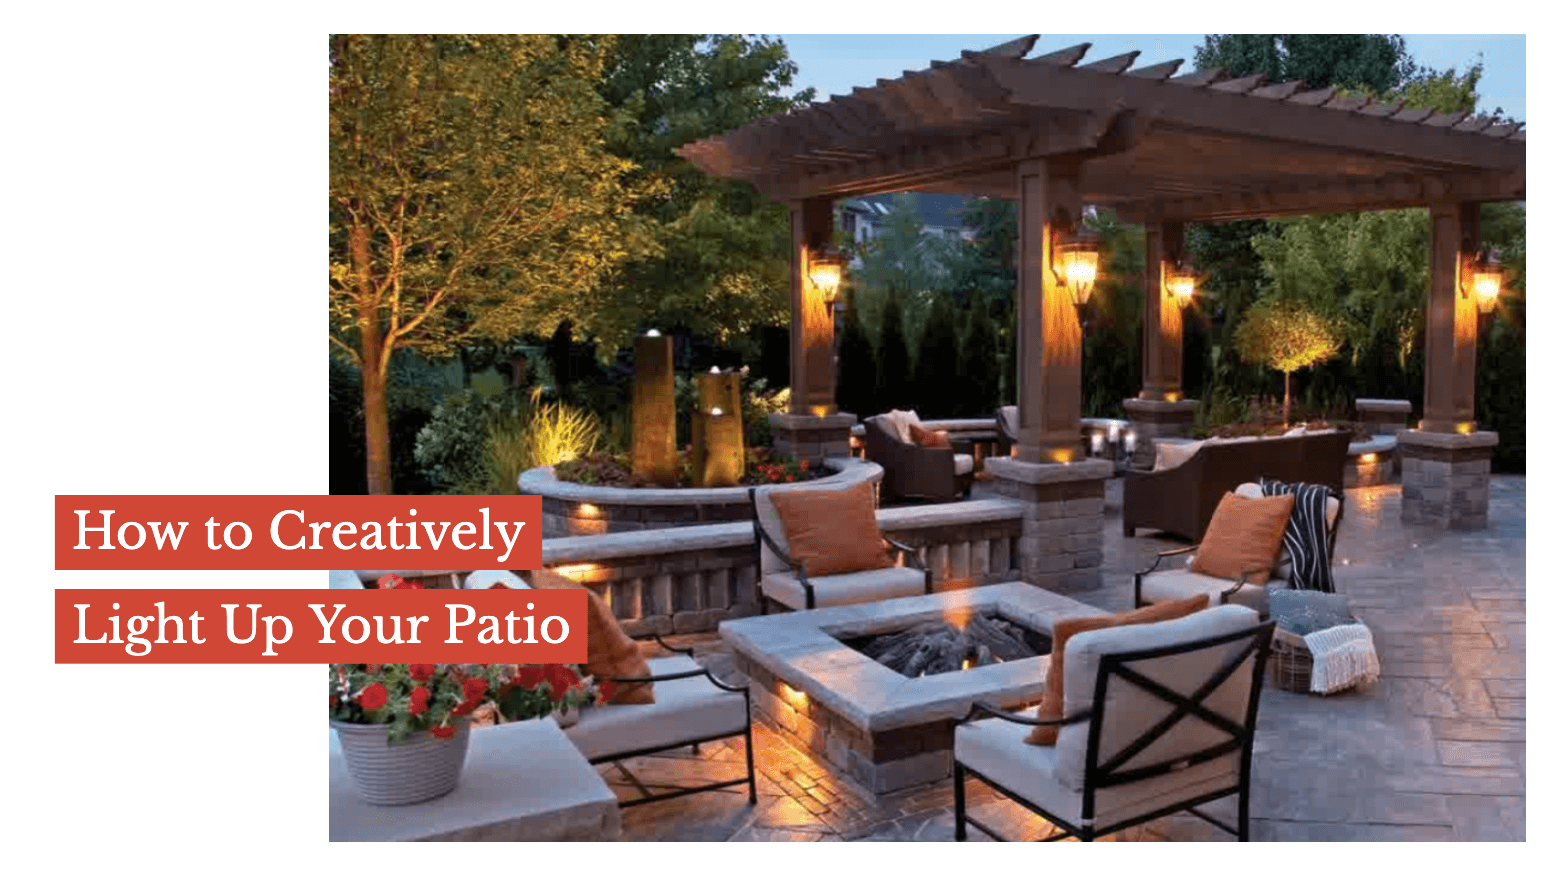 How to Creatively Light Up Your Patio